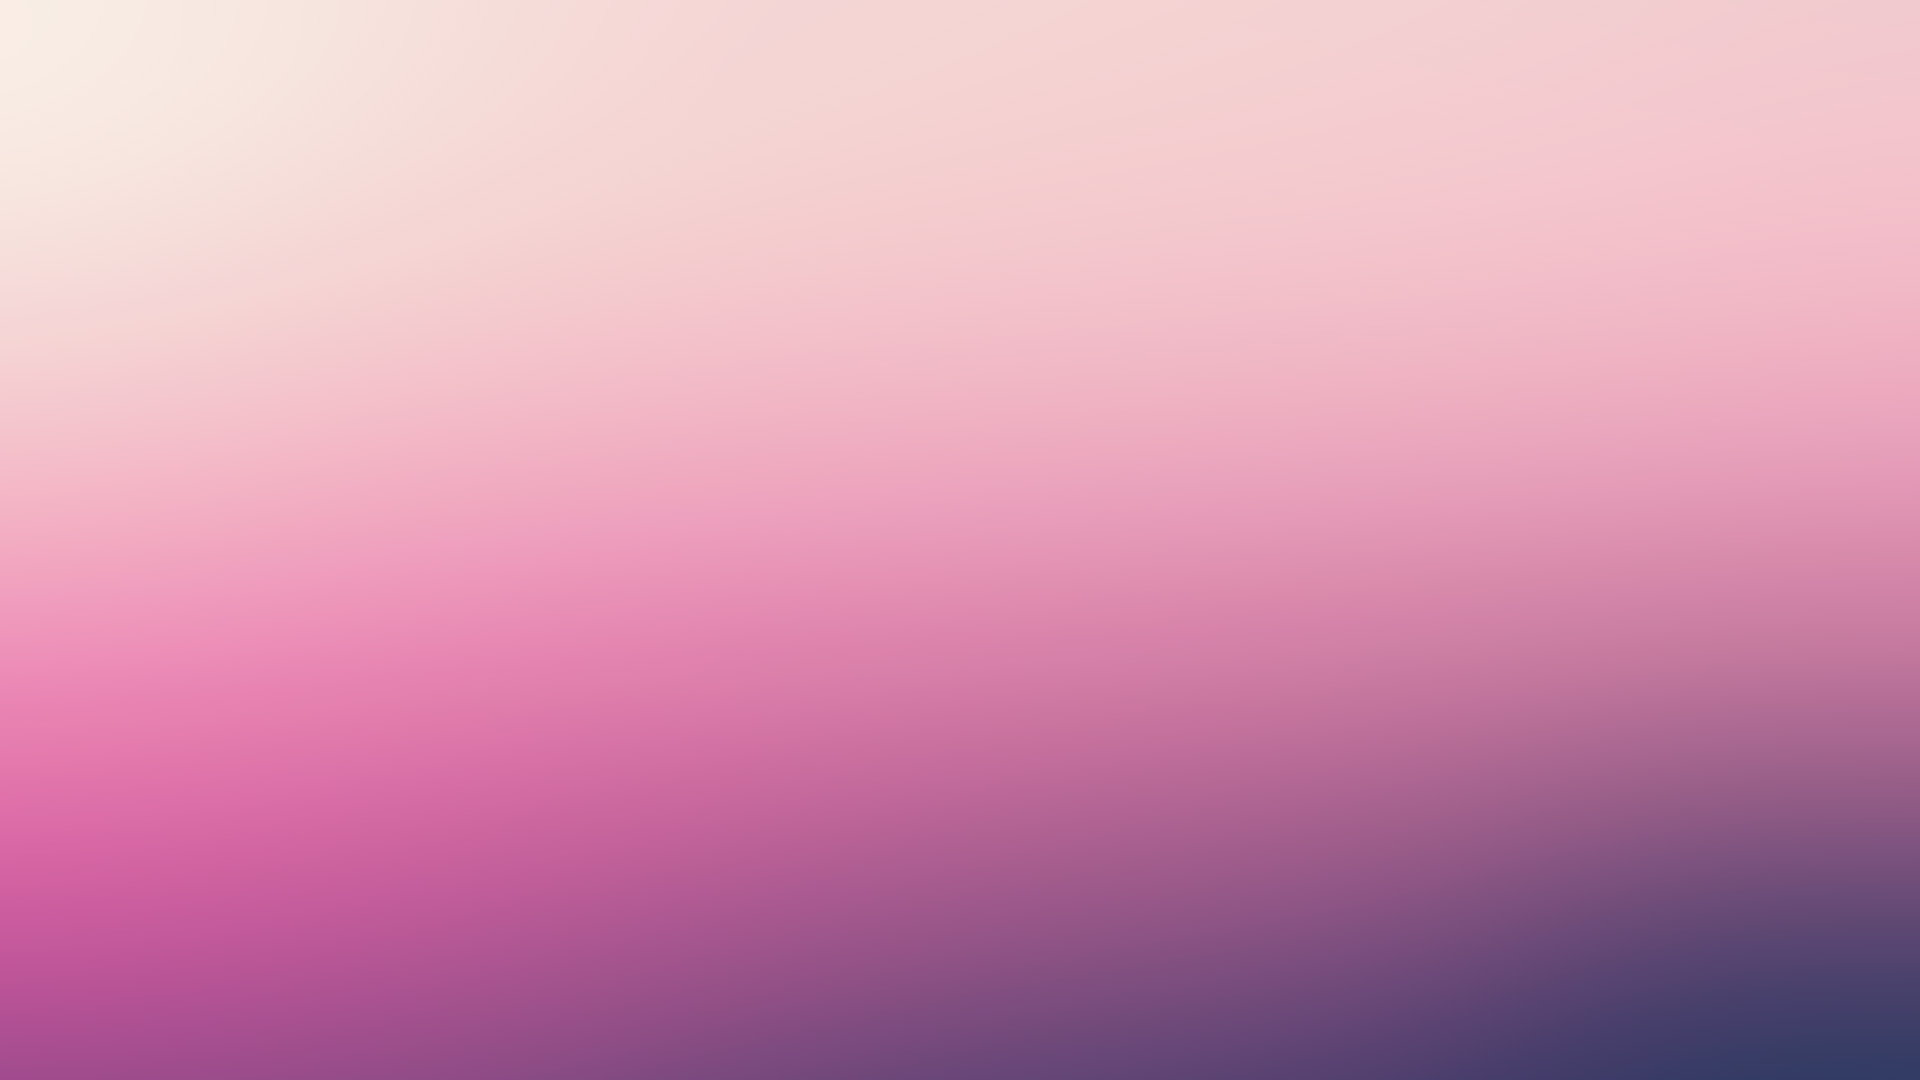 sf53-pink-party-gradation-blur - Papers.co